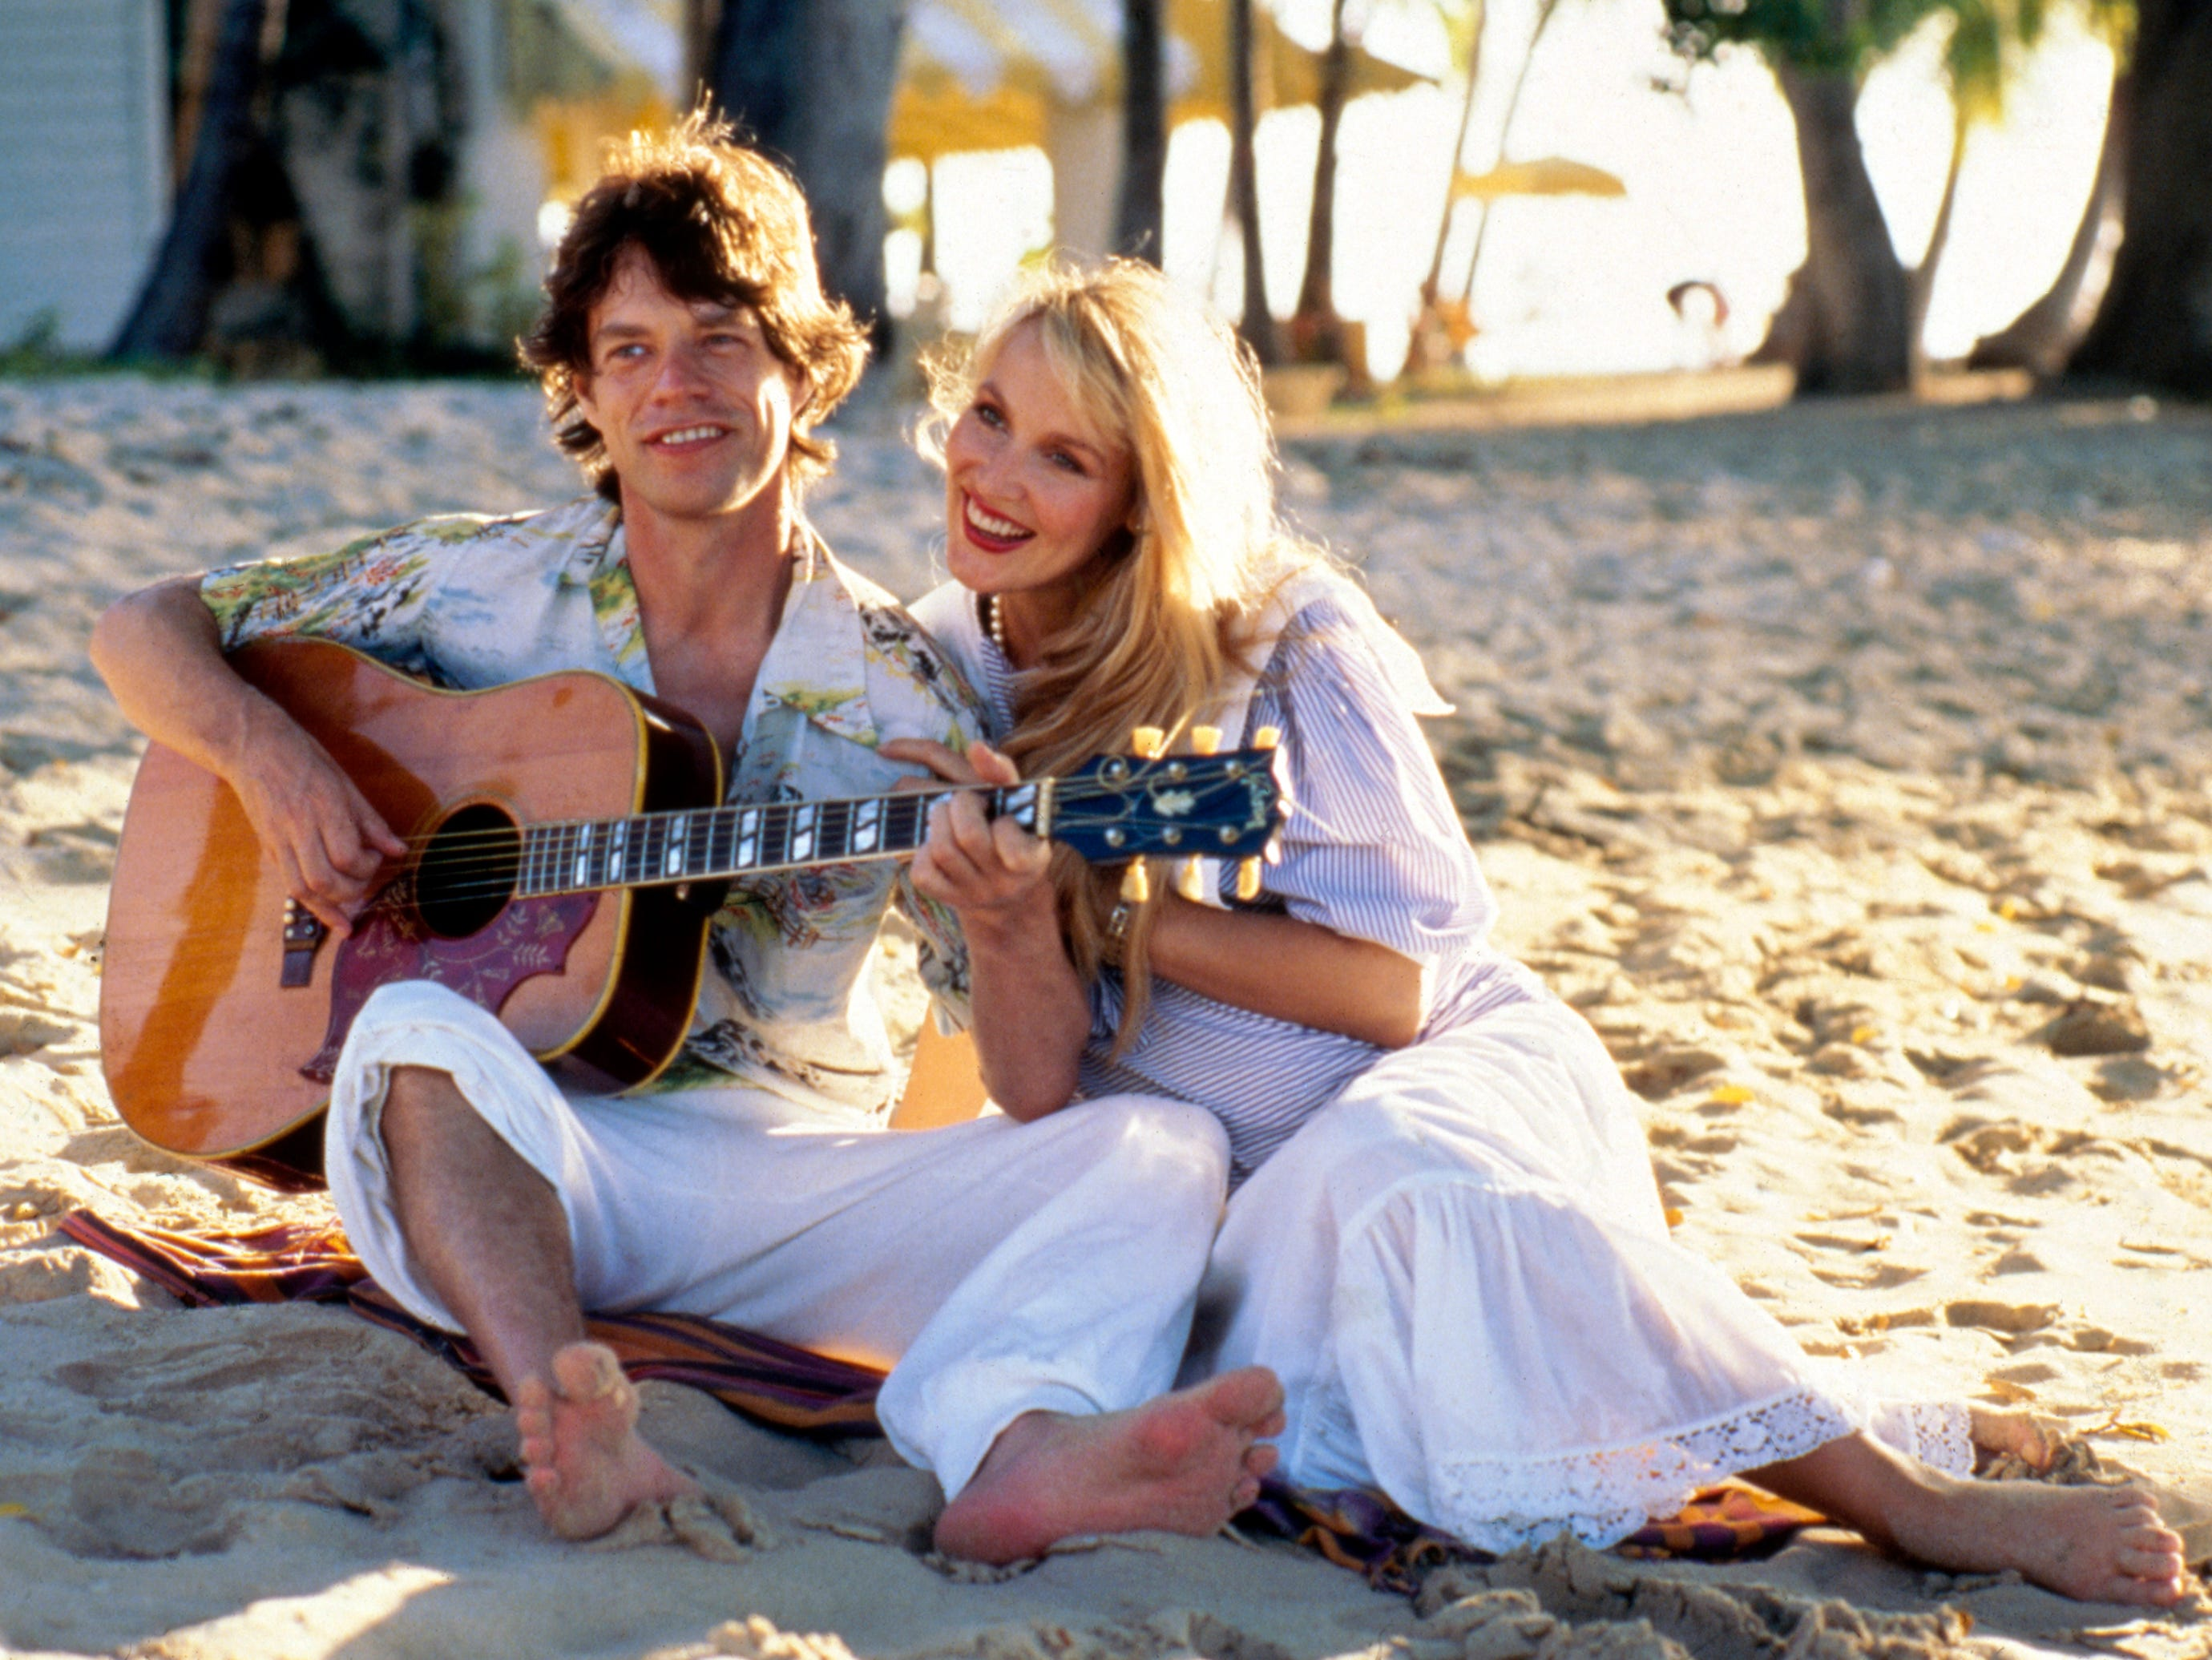 British rock musician Mick Jagger from The Rolling Stones, with his fiancee Jerry Hall at Gibbs Beach, St. Peter, Barbados on Dec. 5, 1983. (AP Photo/Paul Benoit)